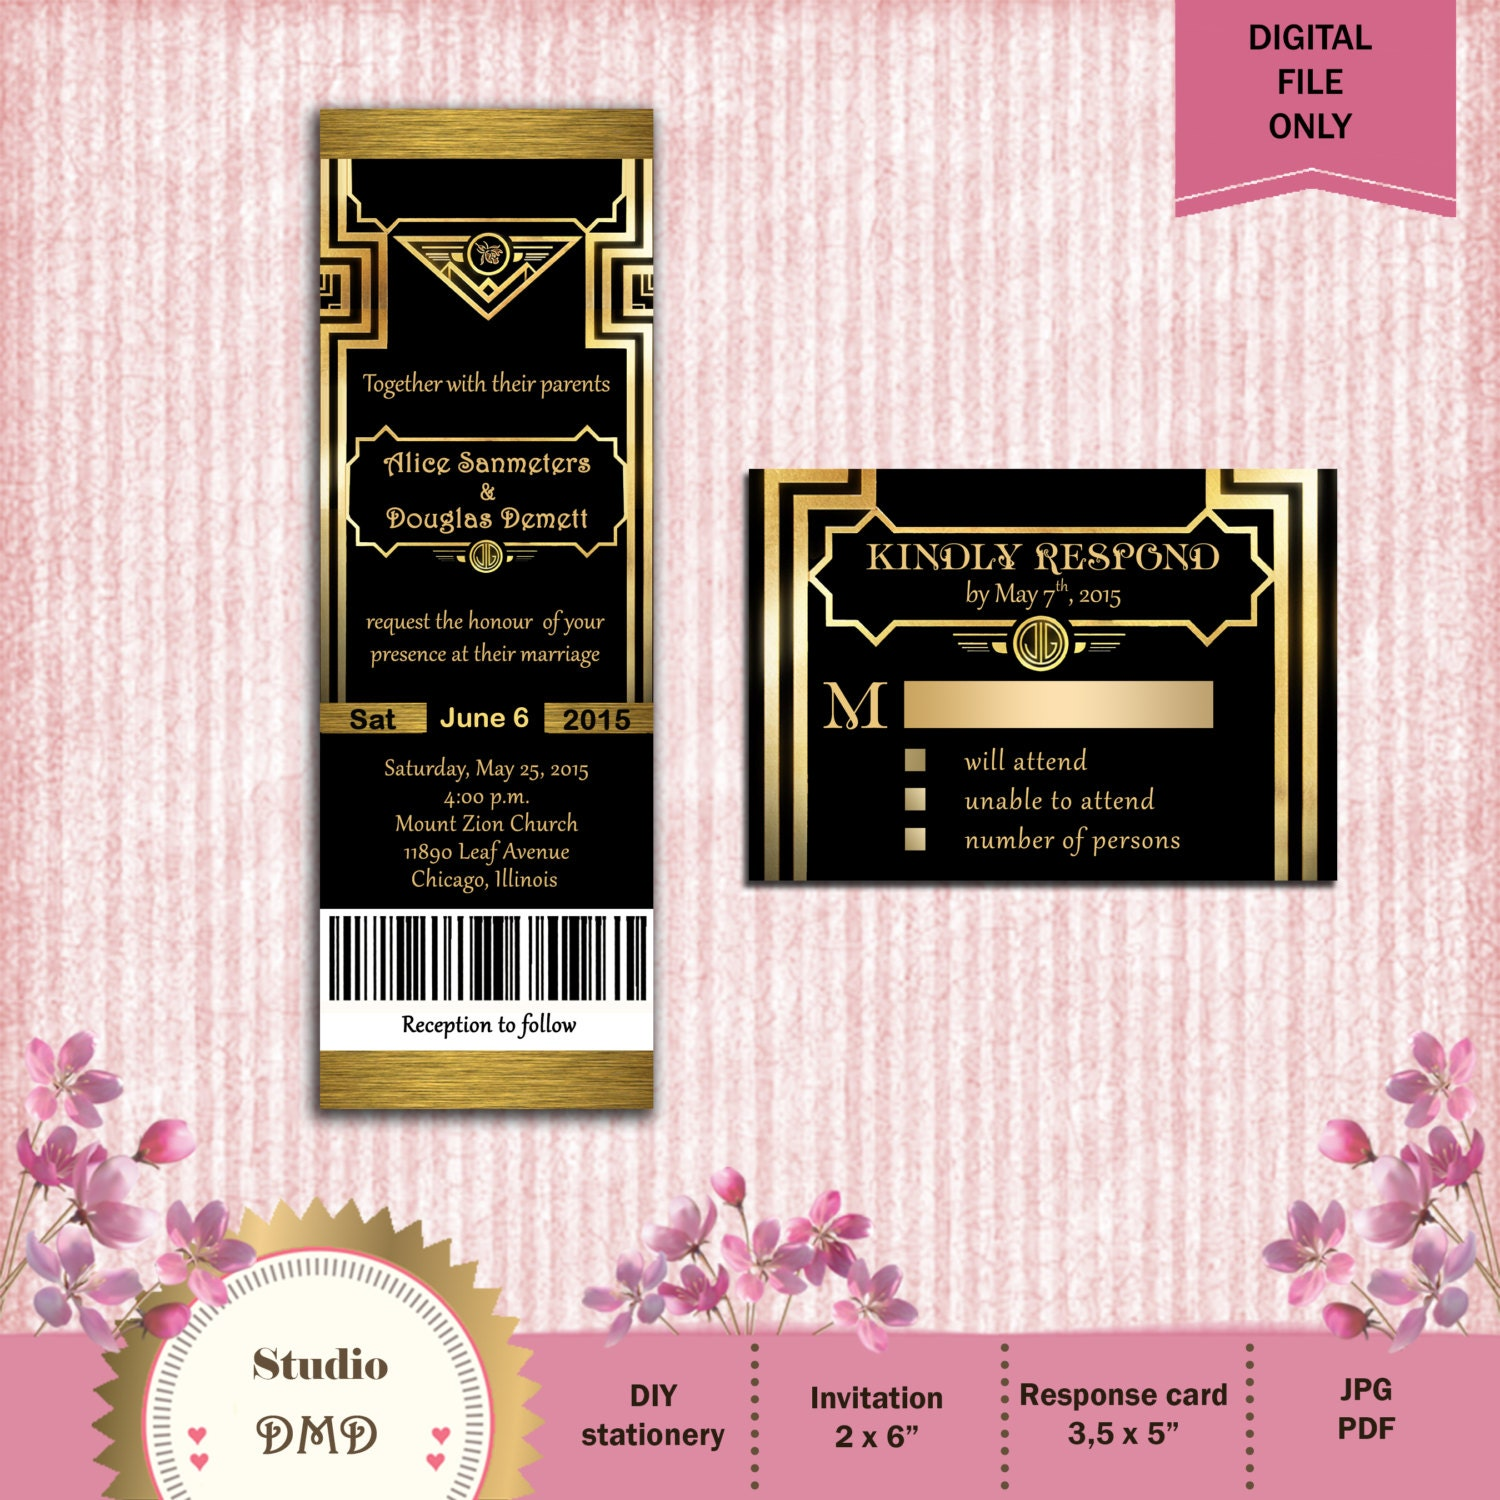 Great Gatsby Style Art Deco Wedding Invitation Suite With